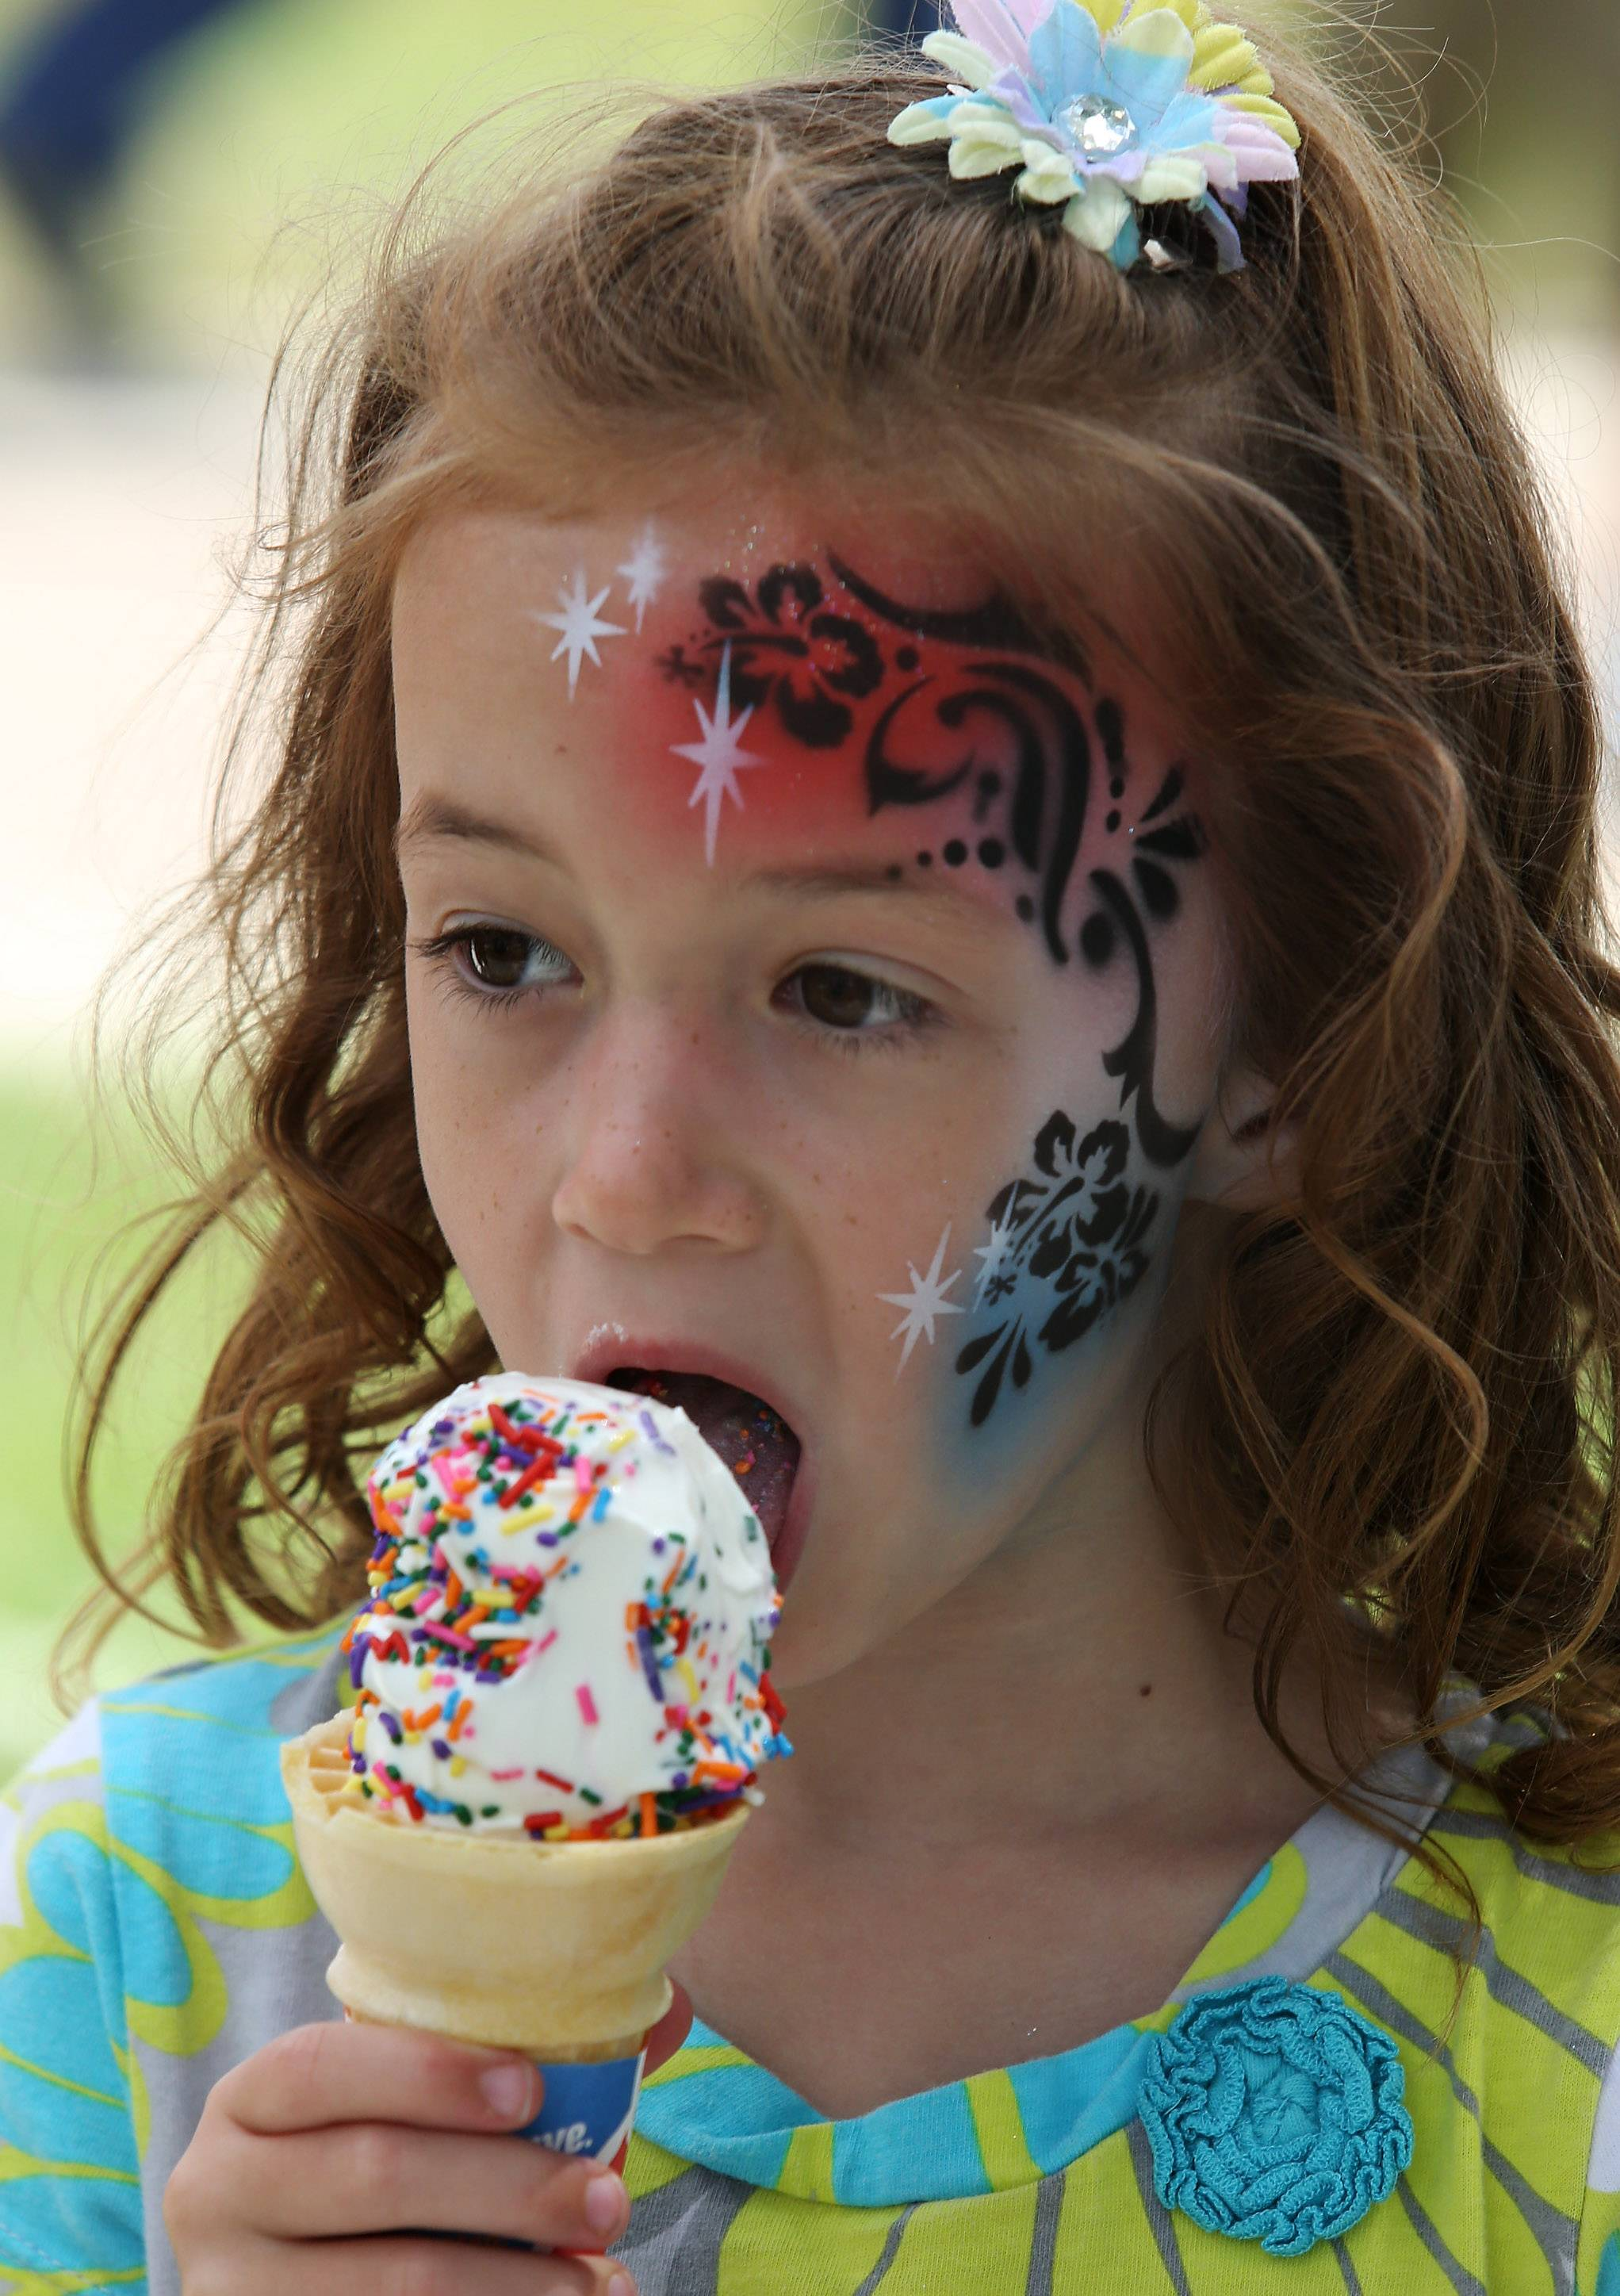 Six-year-old Kate Elliott of Mundelein eats ice cream Thursday after having her face painted by Allison Halver of Just For Fun during the first day of Mundelein Community Days at Kracklauer Park. The festival runs through Sunday, featuring music, food tents, games, and carnival rides.